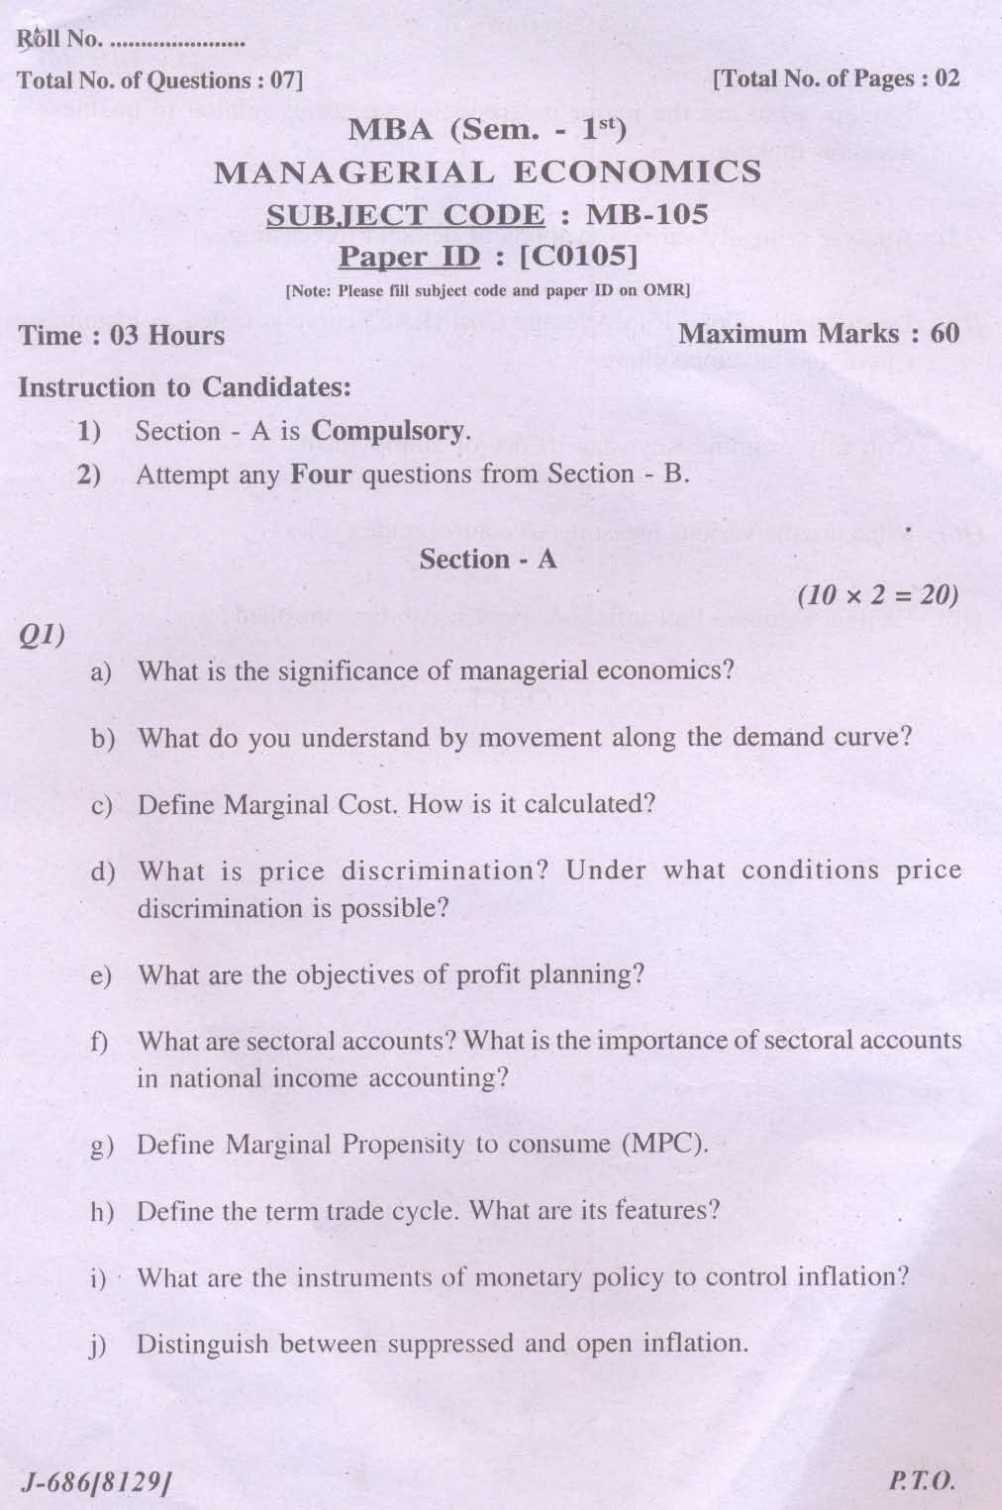 Macroeconomics essay questions and answers